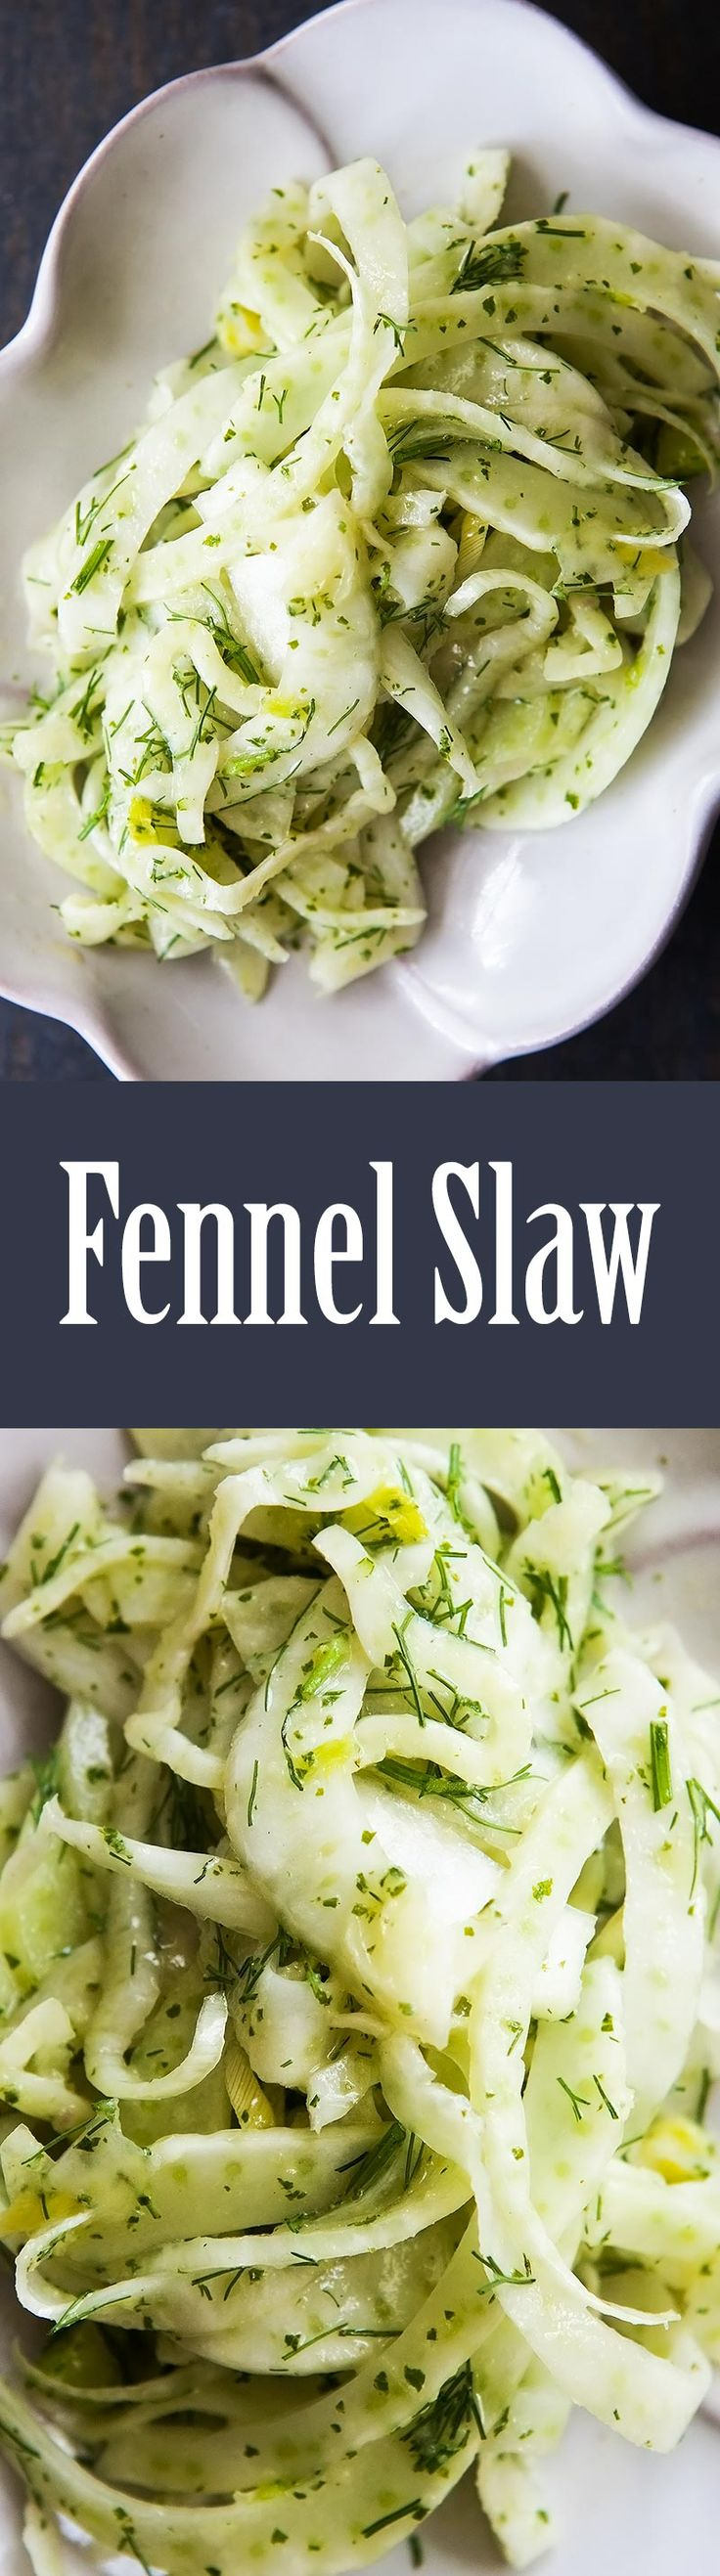 fennel salad with thinly sliced fennel bulb and a fresh mint vinaigrette great with seafood - Ina Garten Fennel Salad